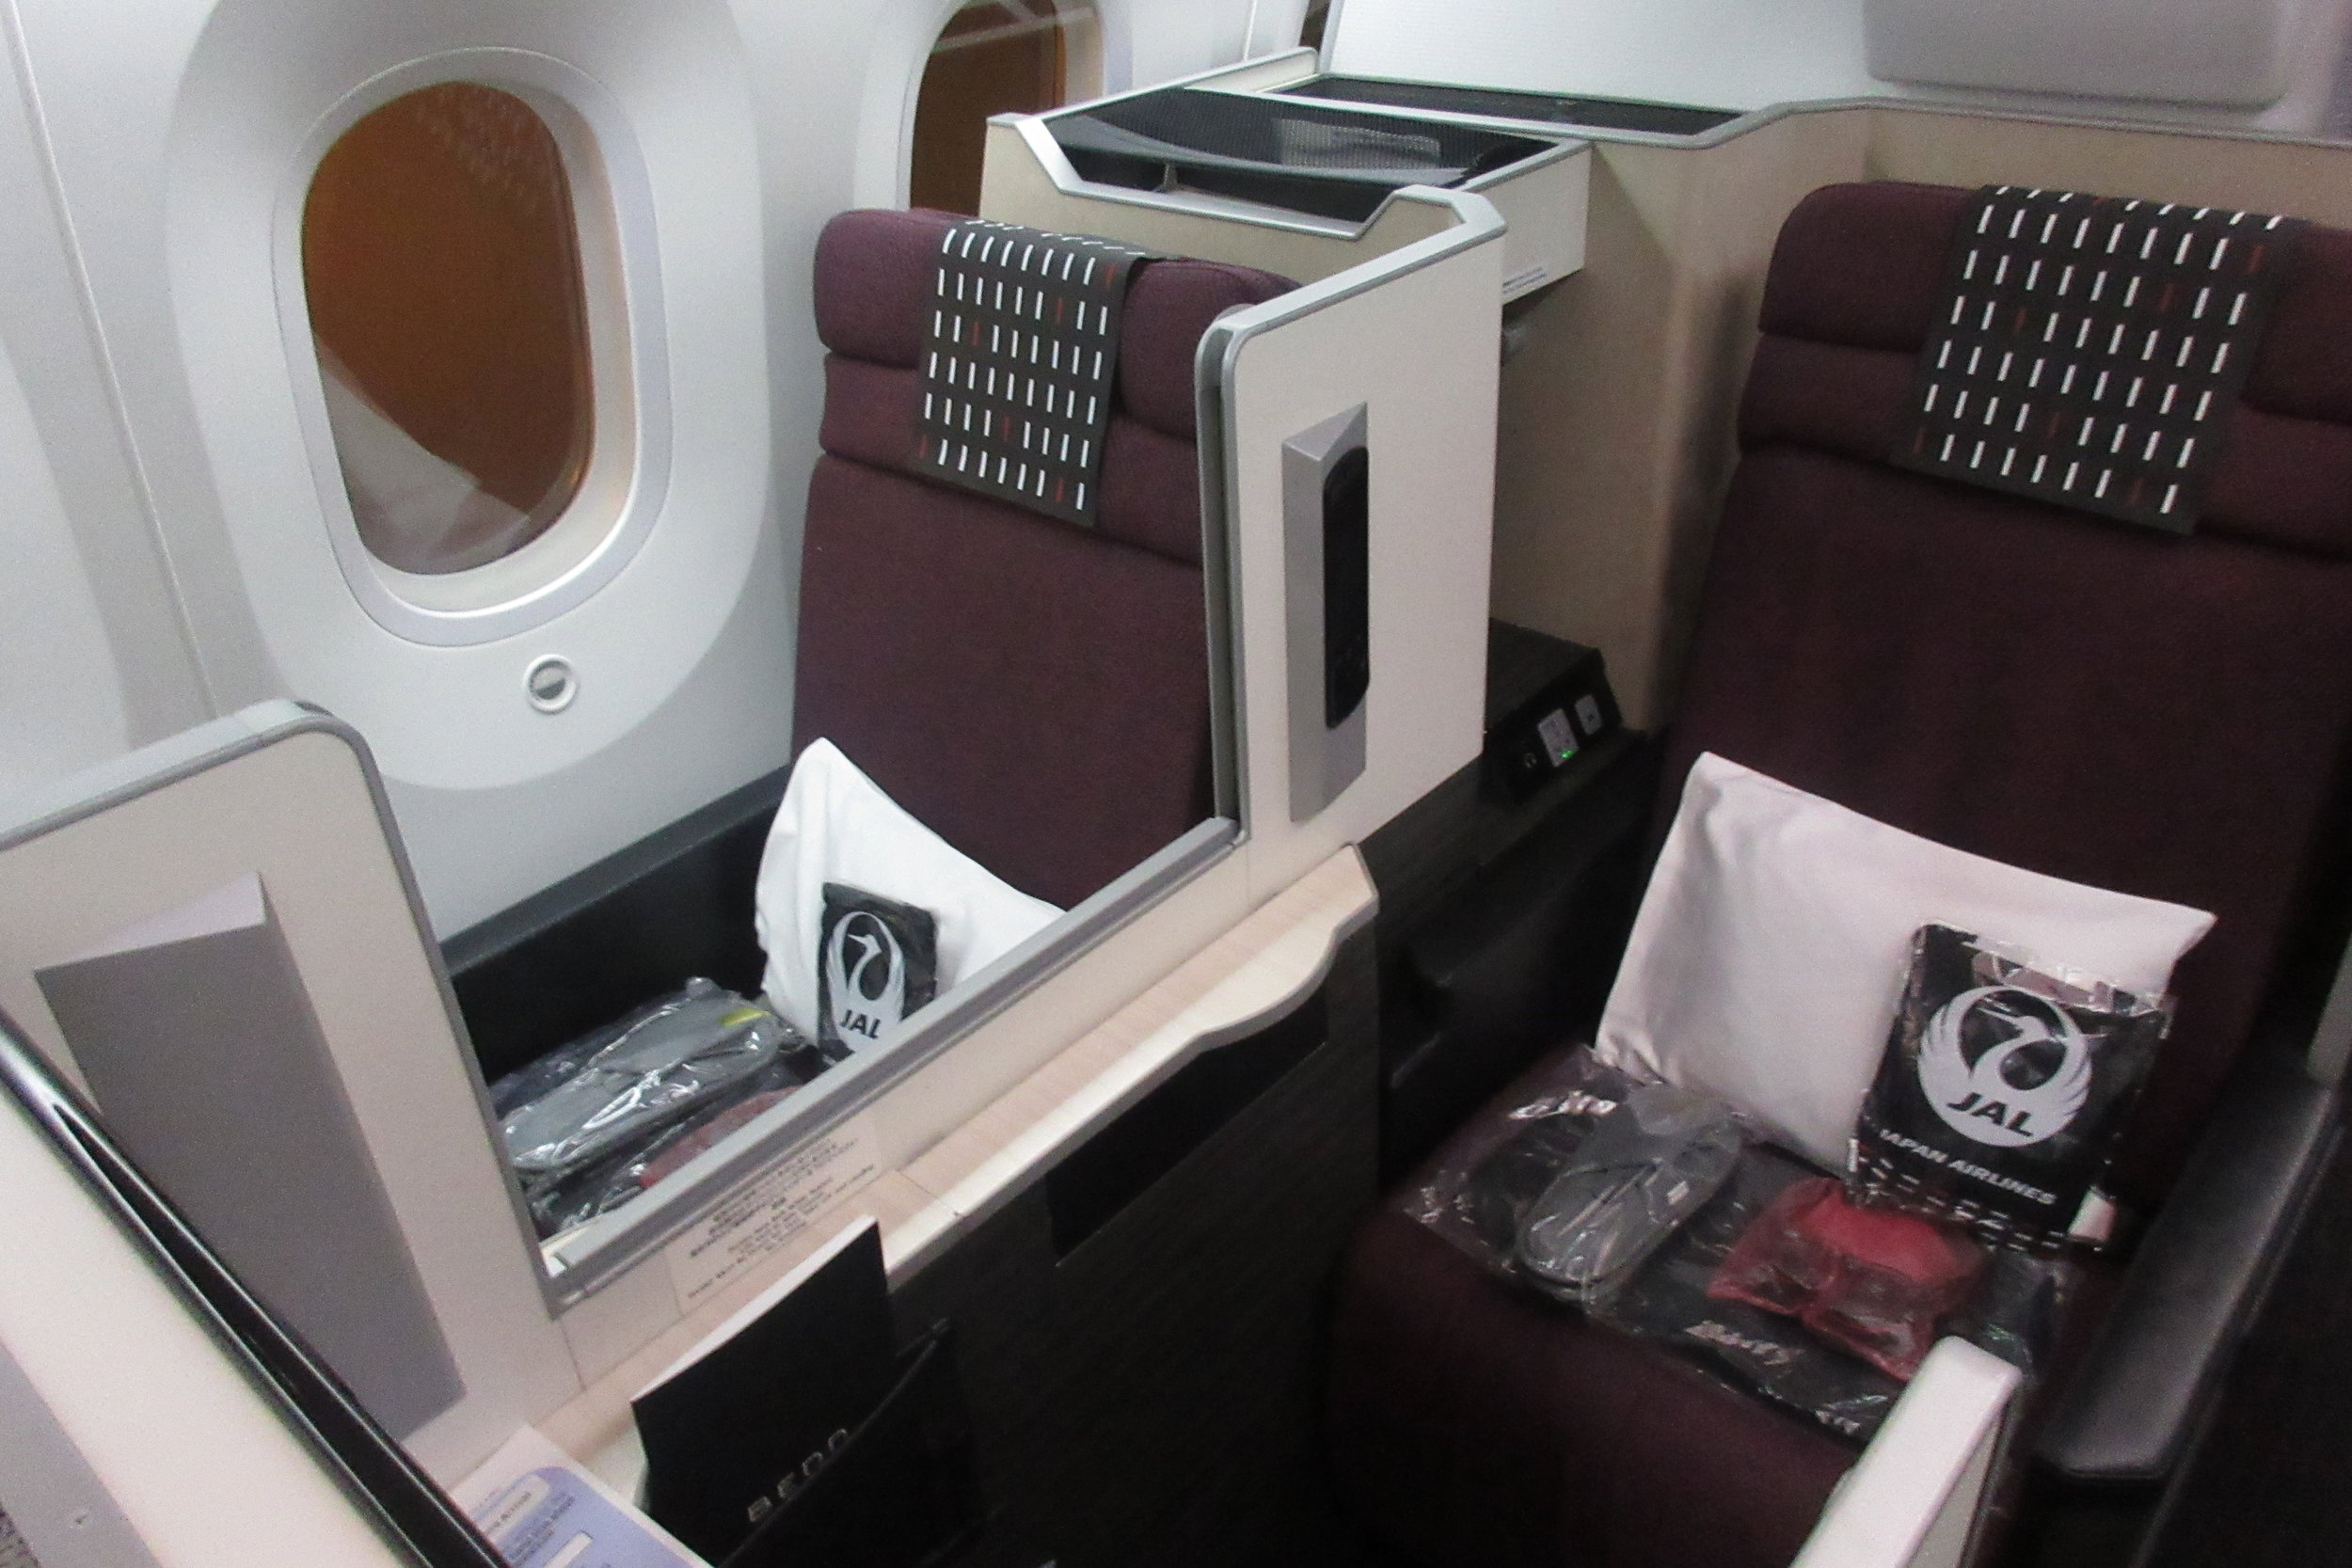 Japan Airlines business class – Seats 9H and 9K